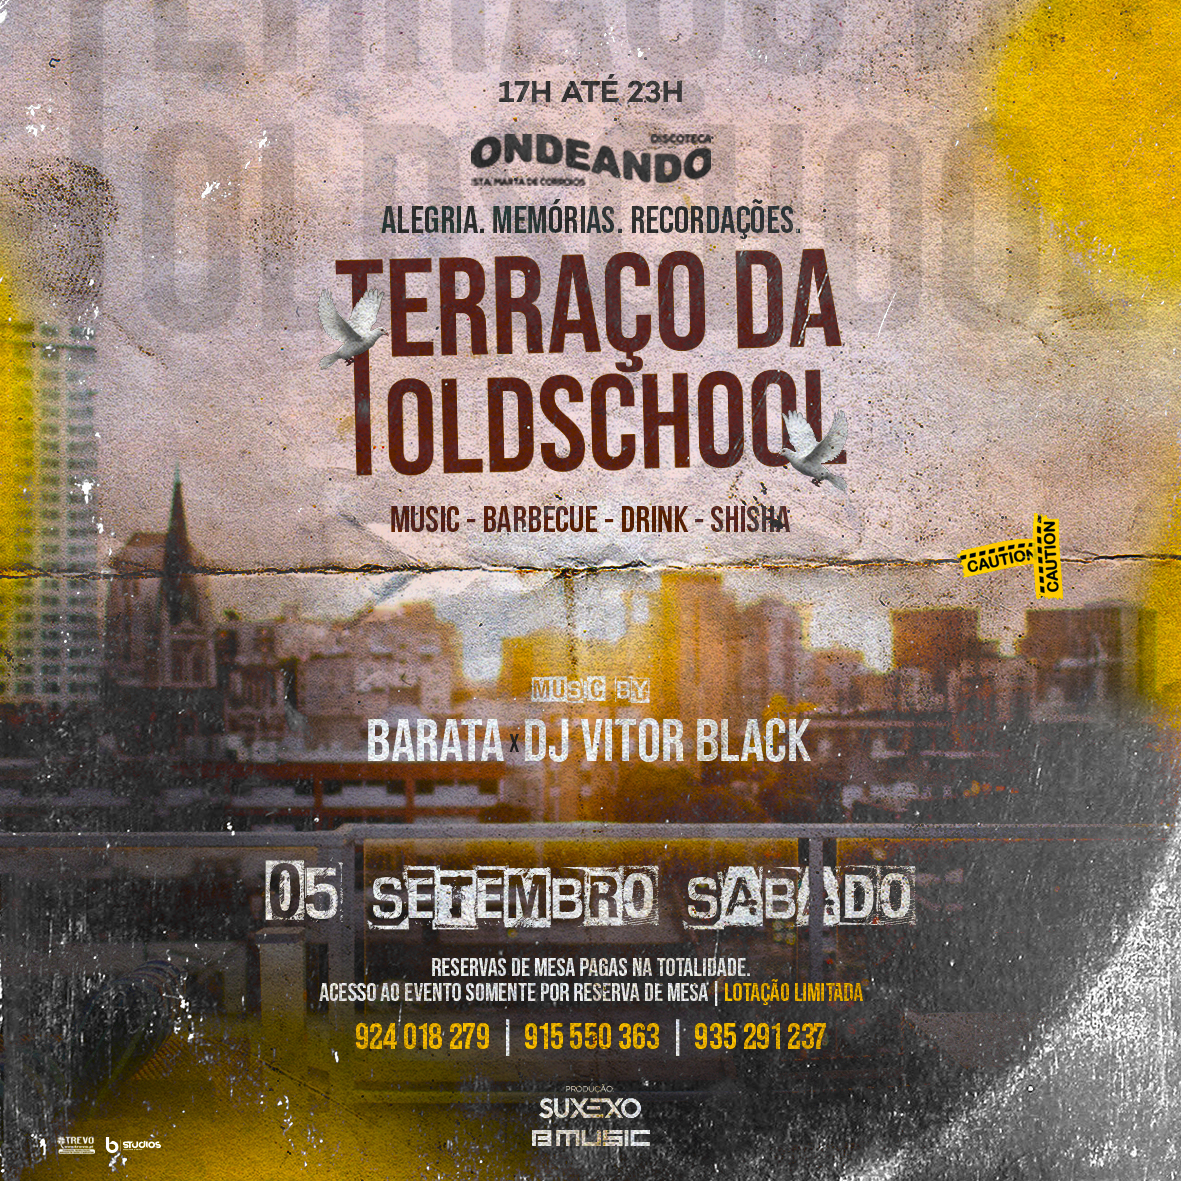 TERRAÇO DA OLD SCHOOL FLYER ARTWORK